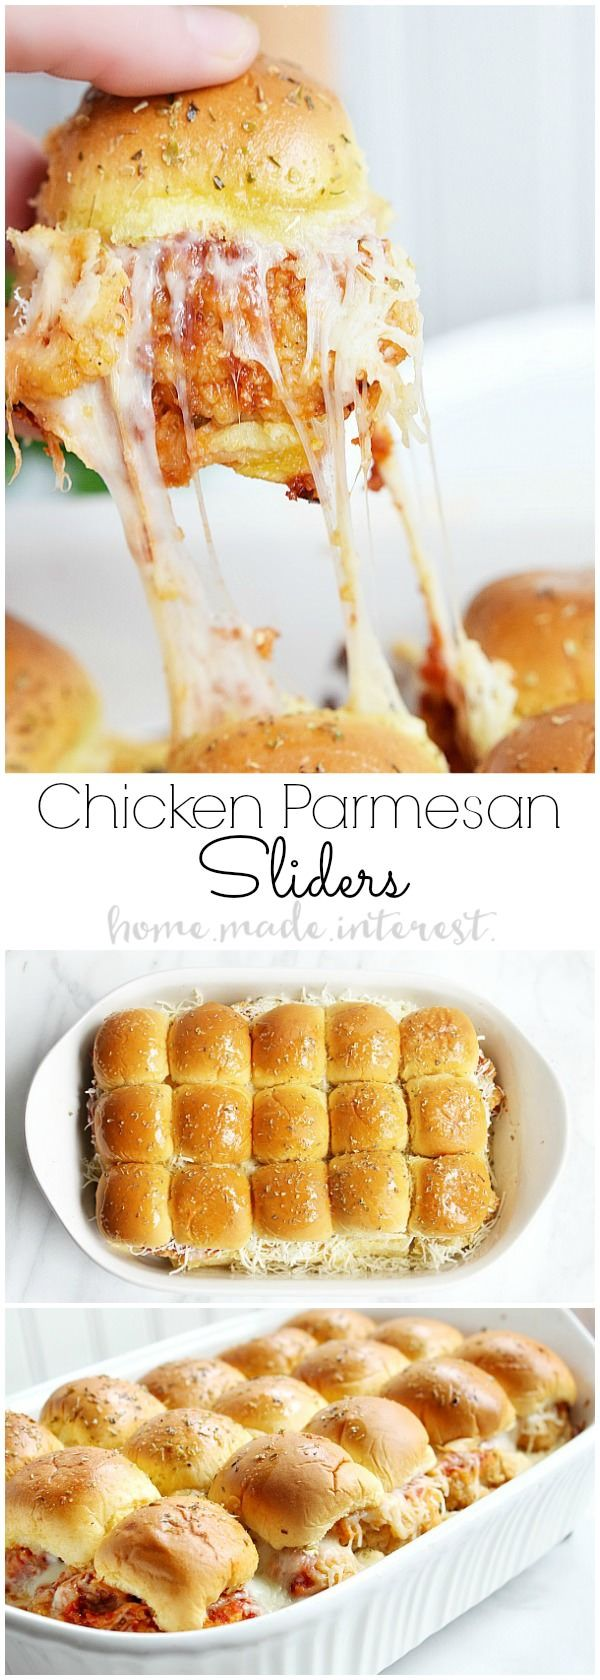 These Chicken Parmesan Sliders are an easy recipe made with fried chicken tenders,